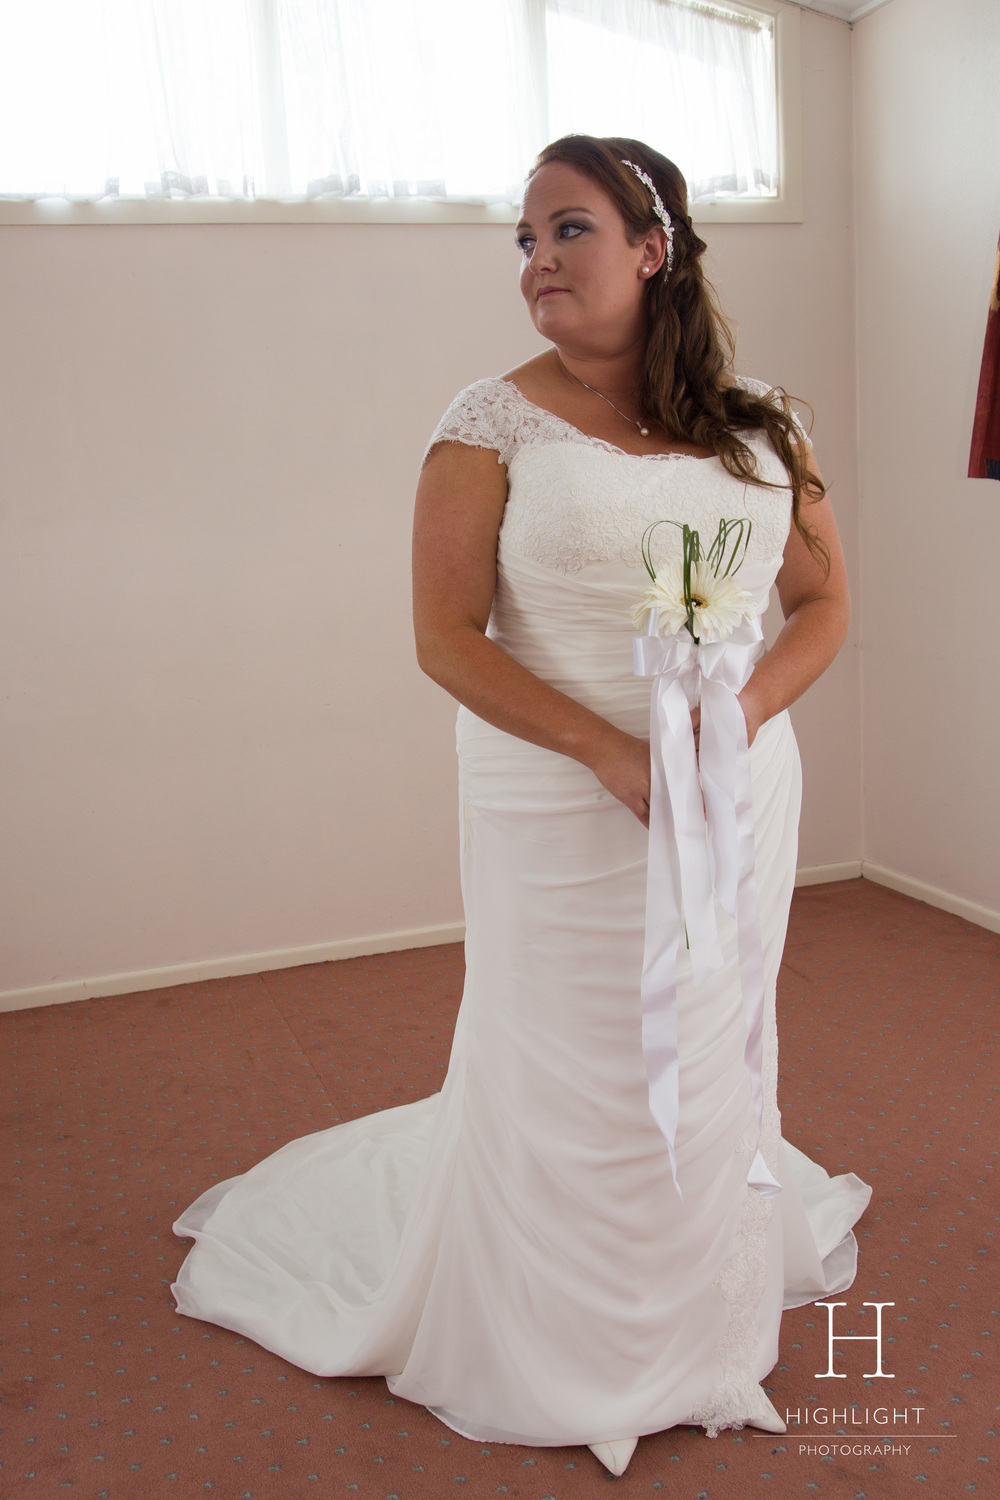 highlight_photography_wedding_new_zealand_bride_mother.jpg